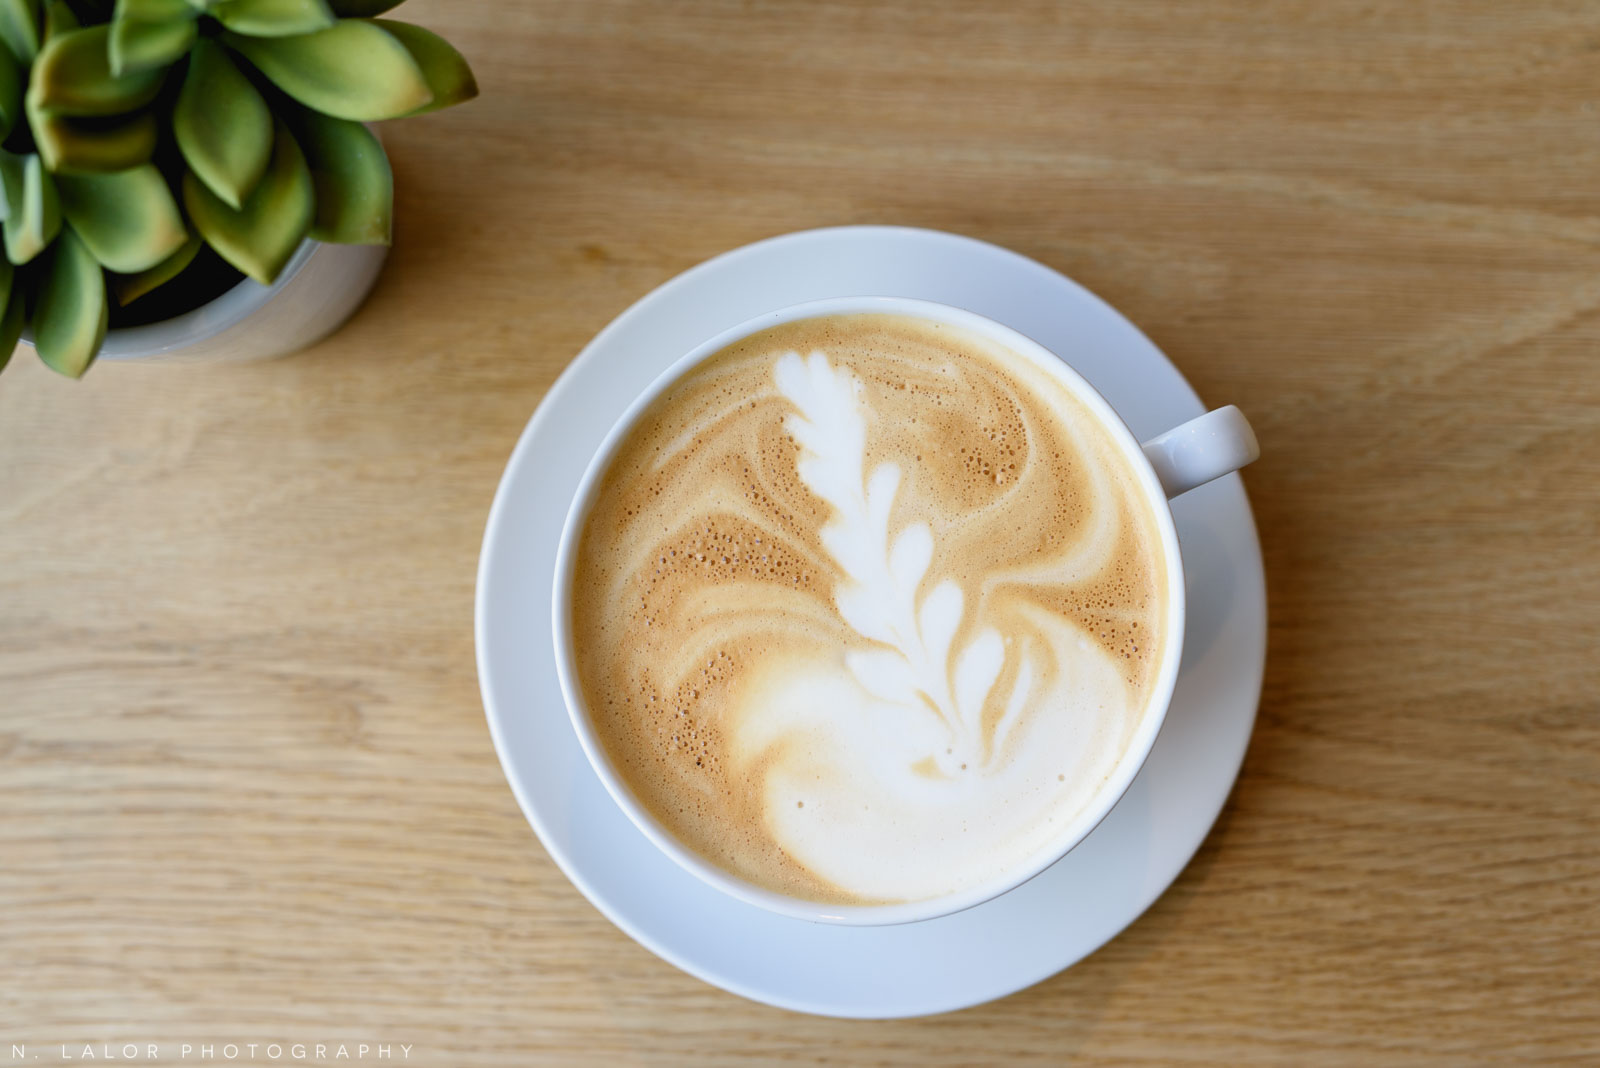 Latte art. Roost Darien, small business photos by N. Lalor Photography.